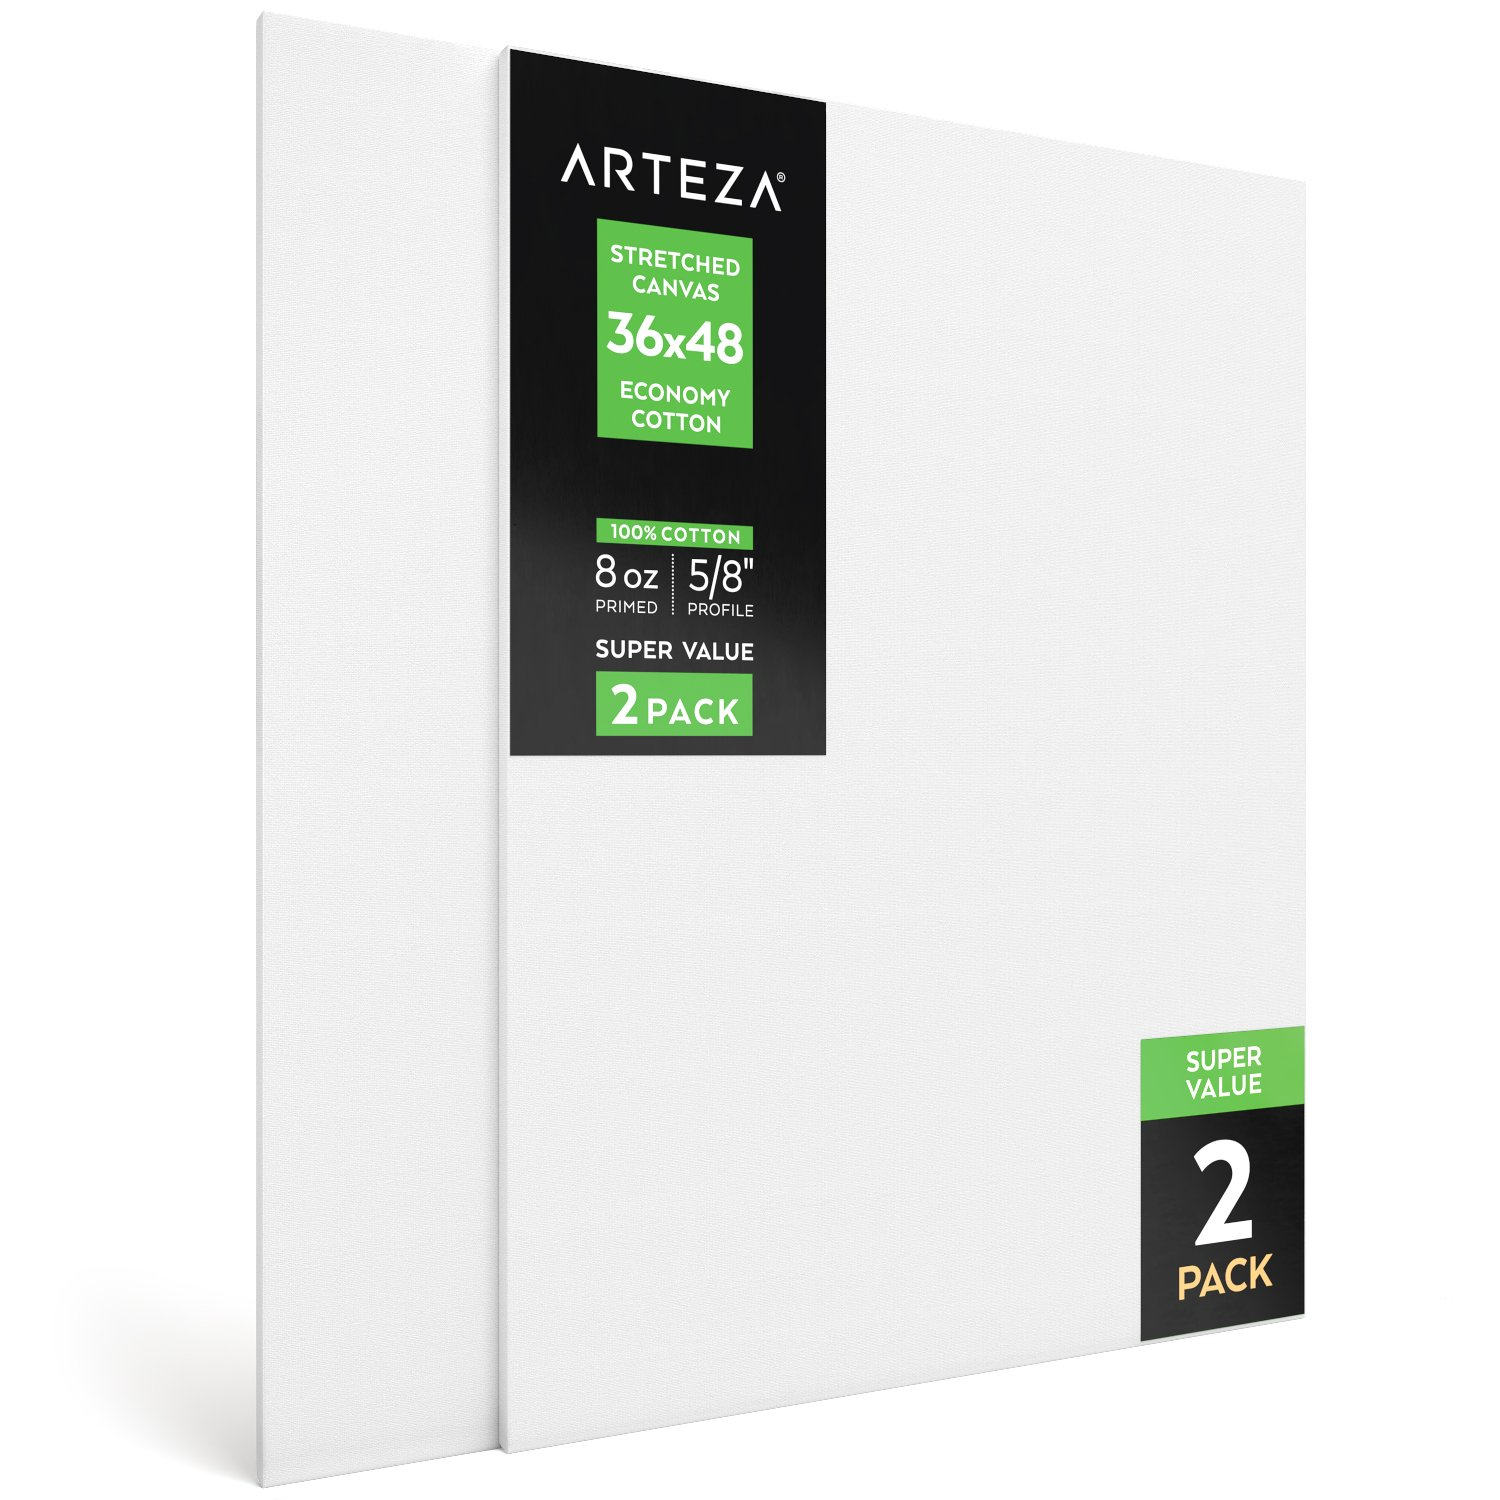 Arteza Blank Pre Stretched Canvas for Painting, 36X48, Pack of 2, Primed, 100% Cotton, for Acrylic Paint, Oil Paint, Other Wet or Dry Art Media, for The Professional Artist, Hobby Painters, Kids ARTZ-8059